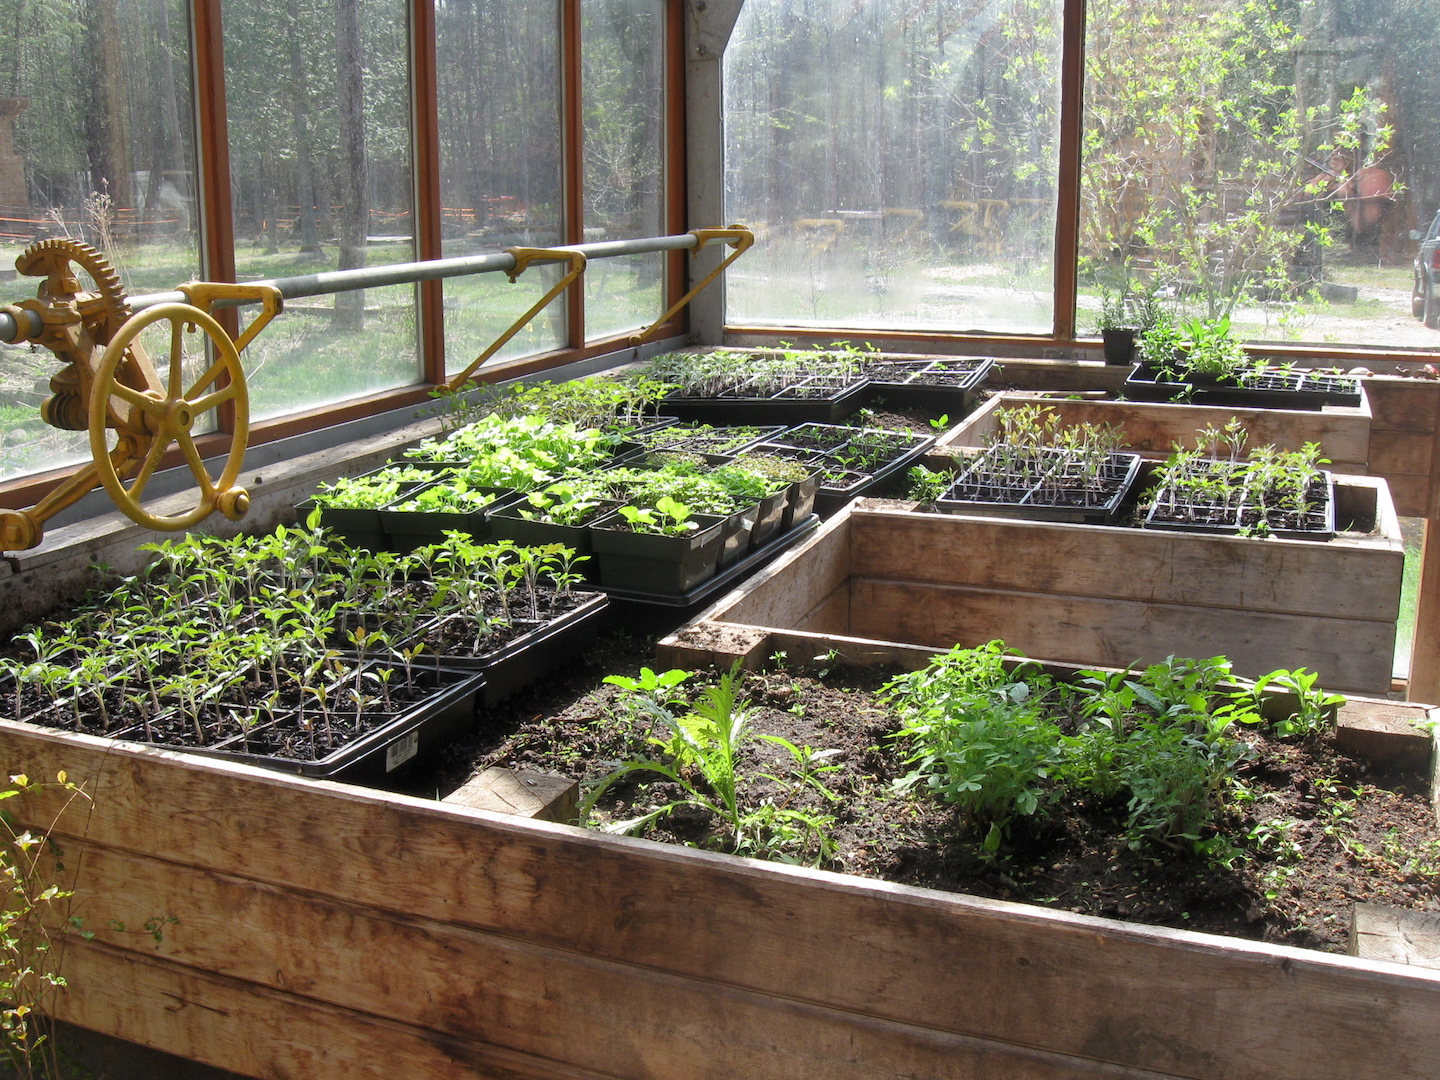 Starting Seeds in an Attached Greenhouse